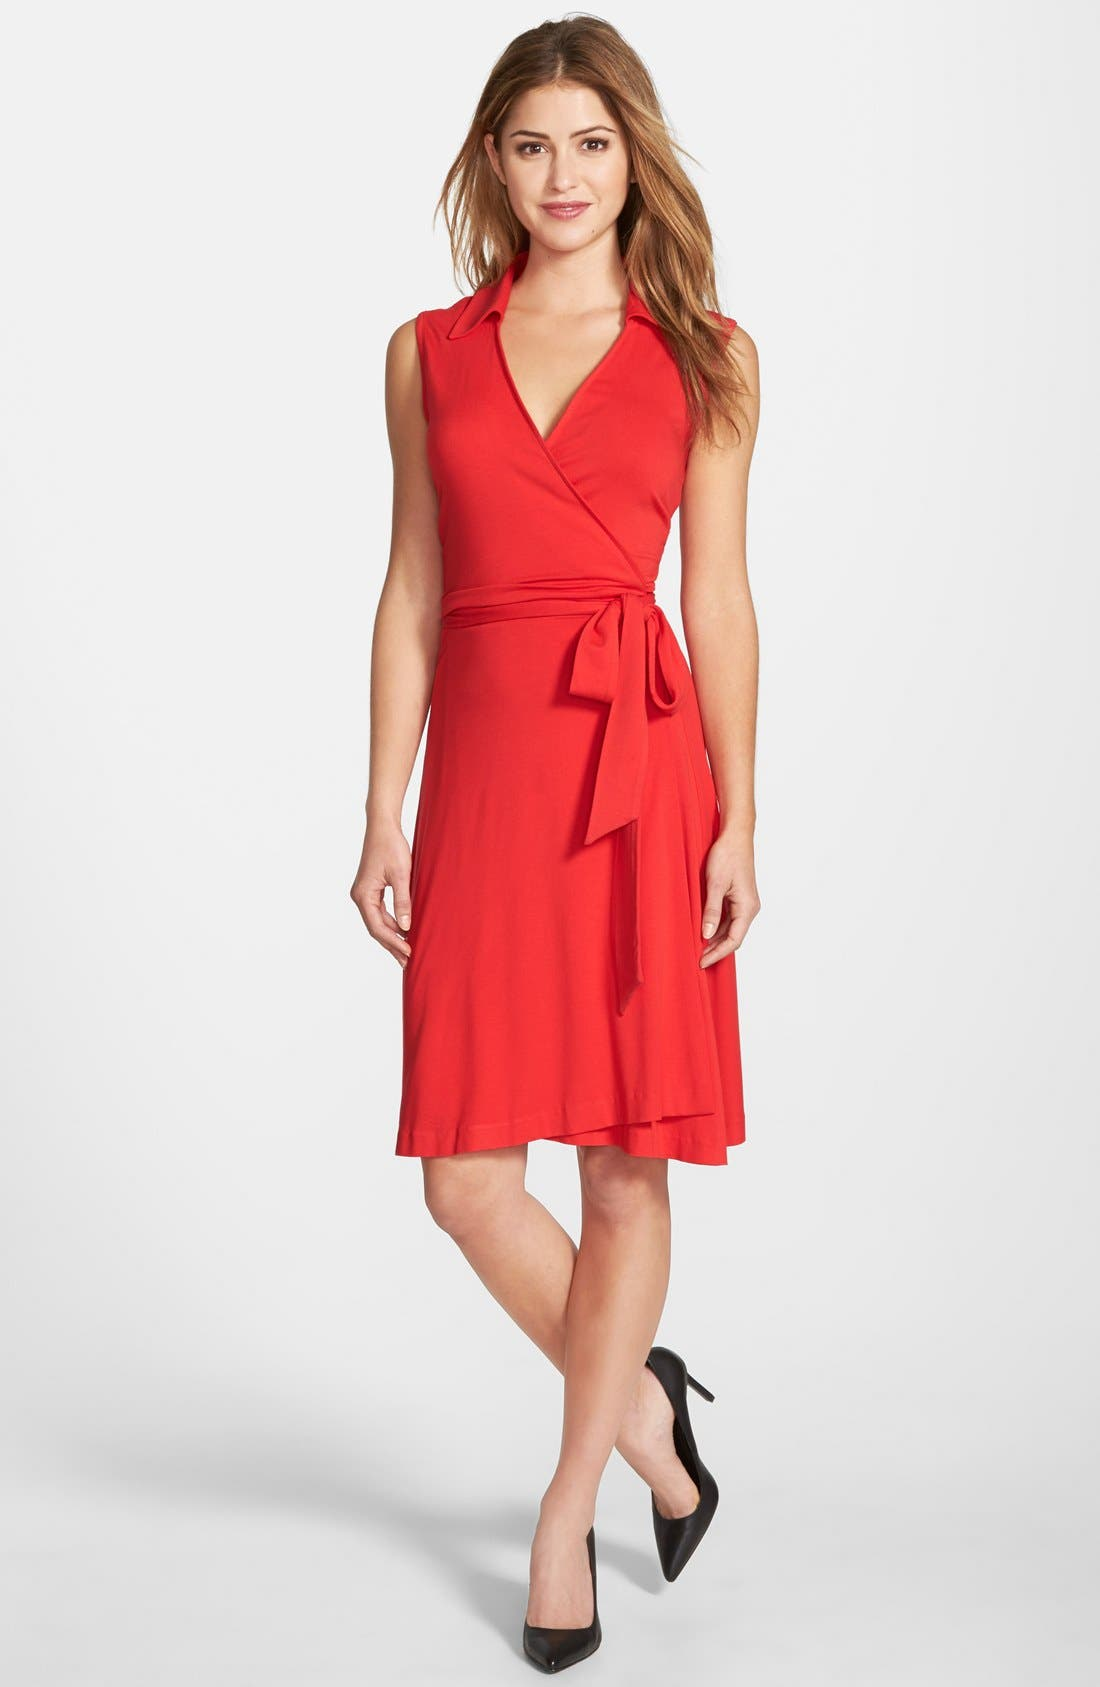 Alternate Image 1 Selected - Vince Camuto Sleeveless Wrap Jersey Dress (Regular & Petite) (Nordstrom Exclusive)